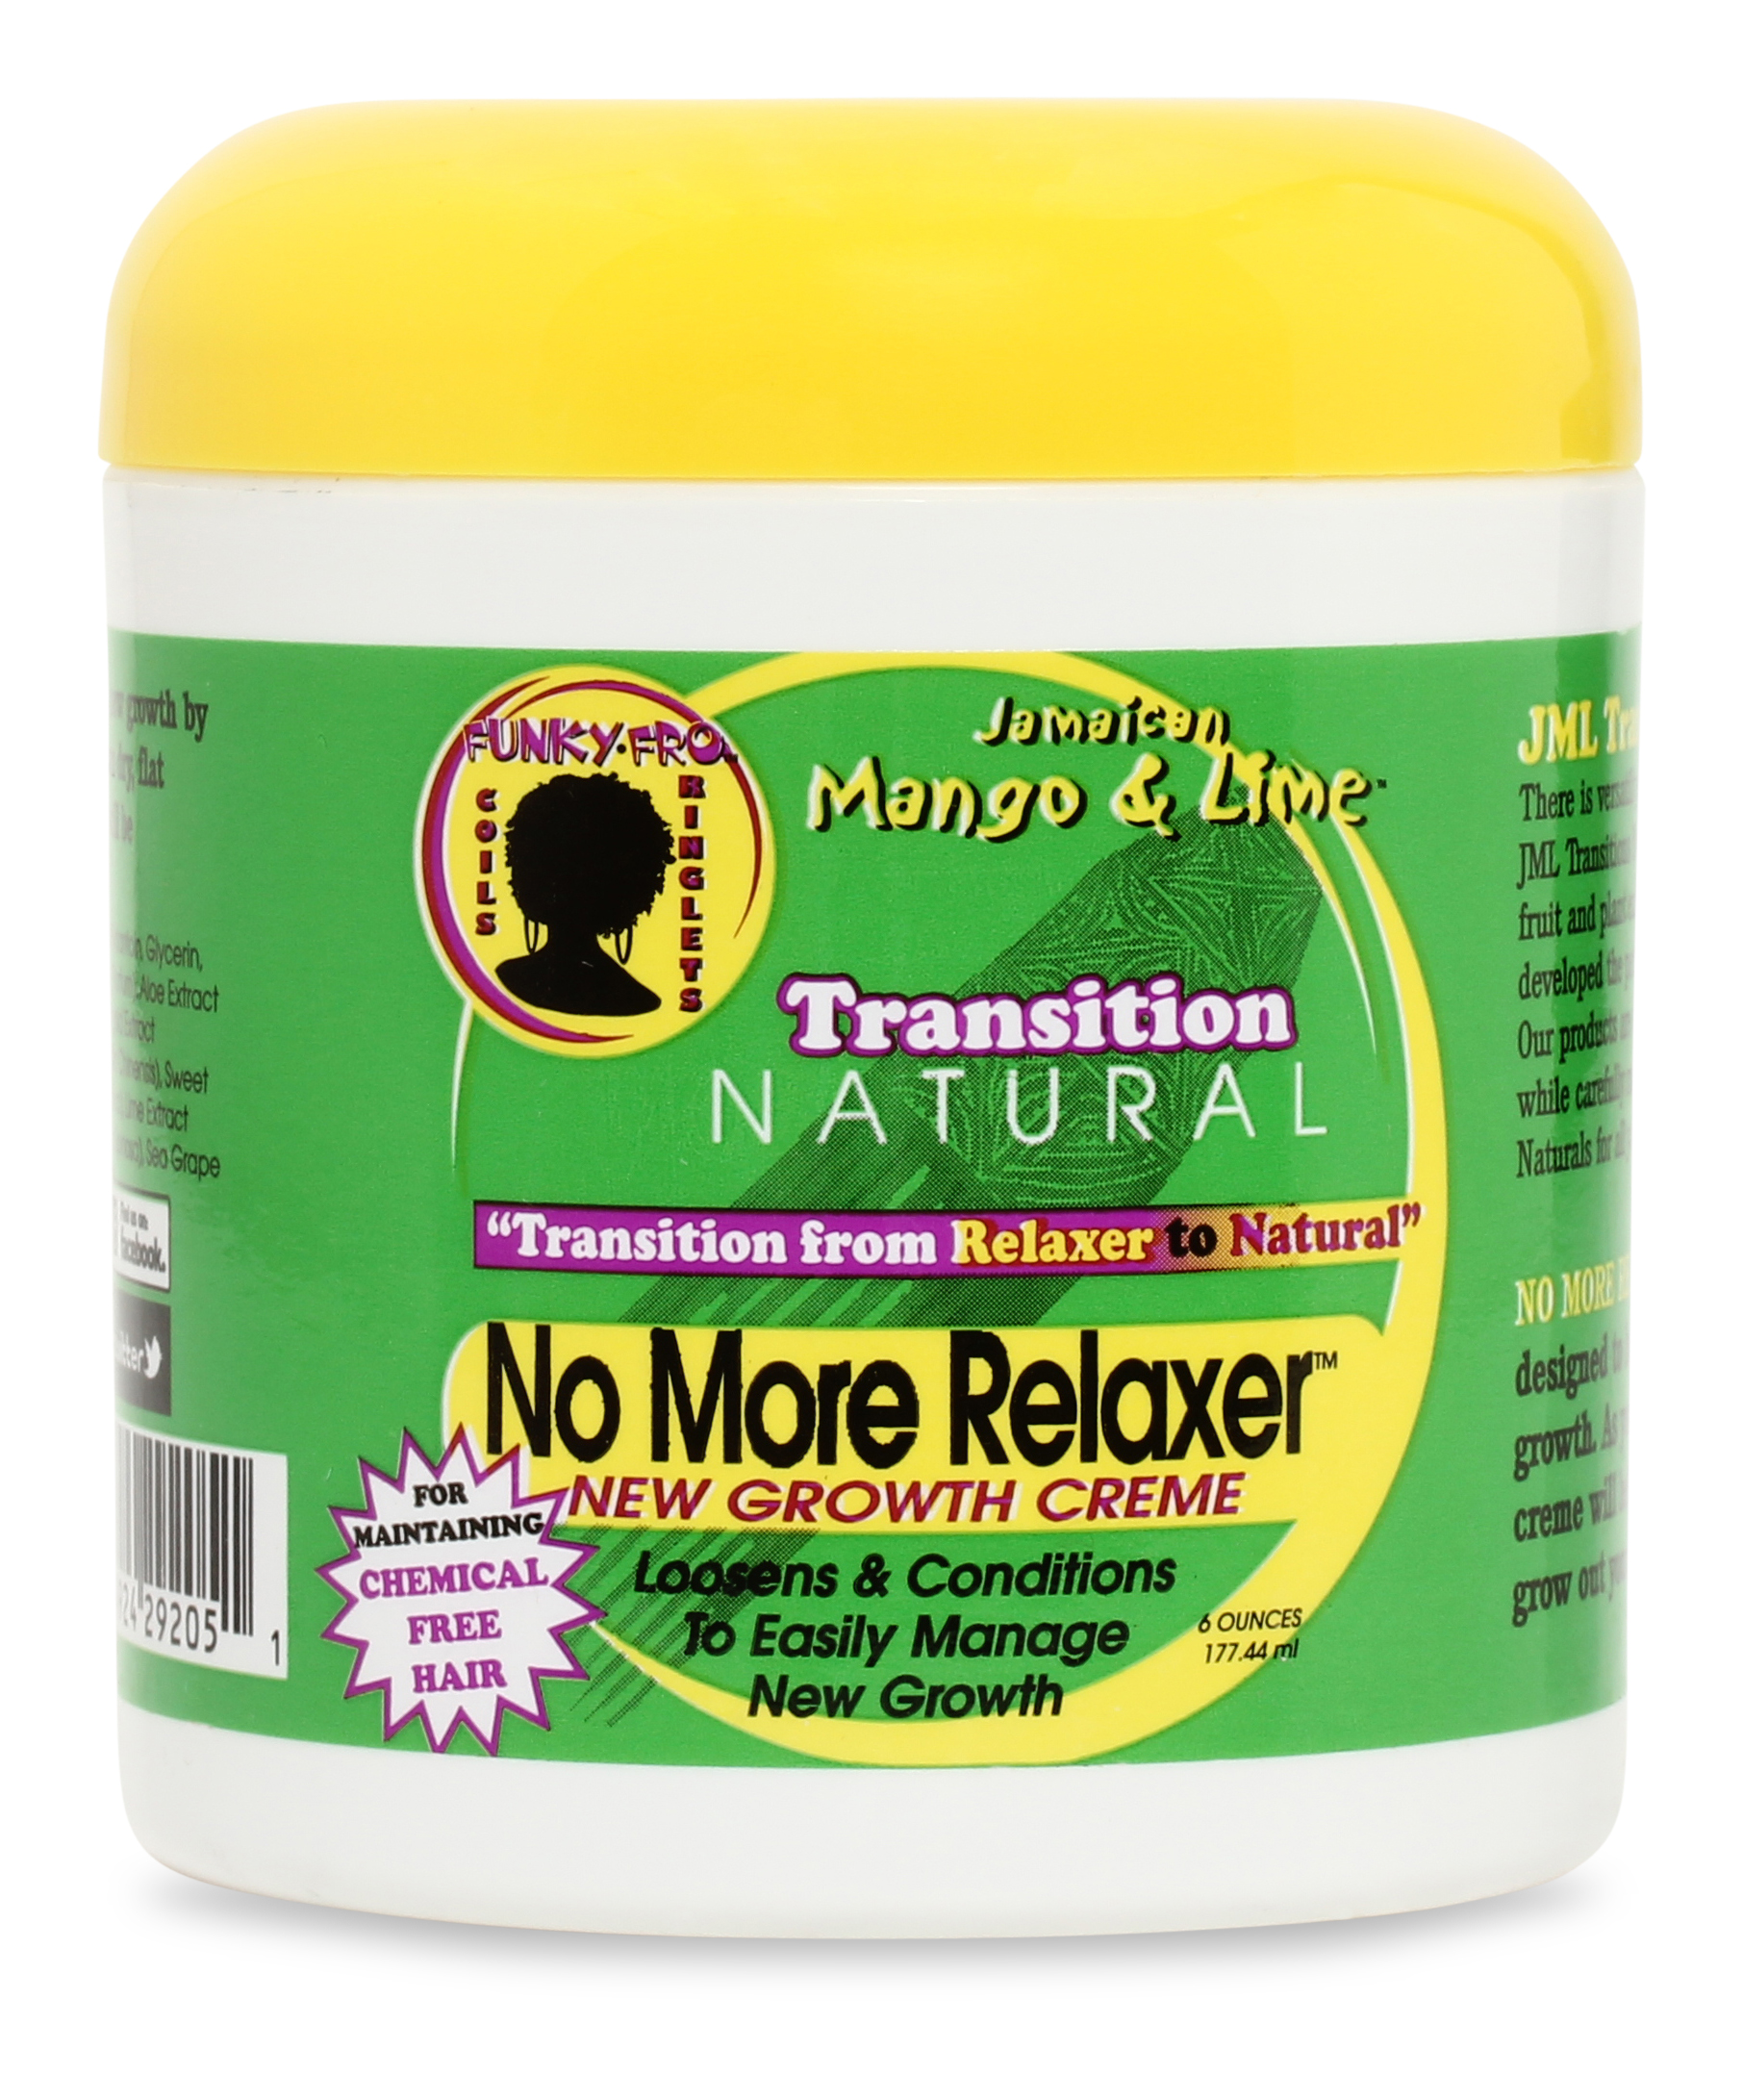 Jamaican Mango And Lime Transition Natural No More Relaxer